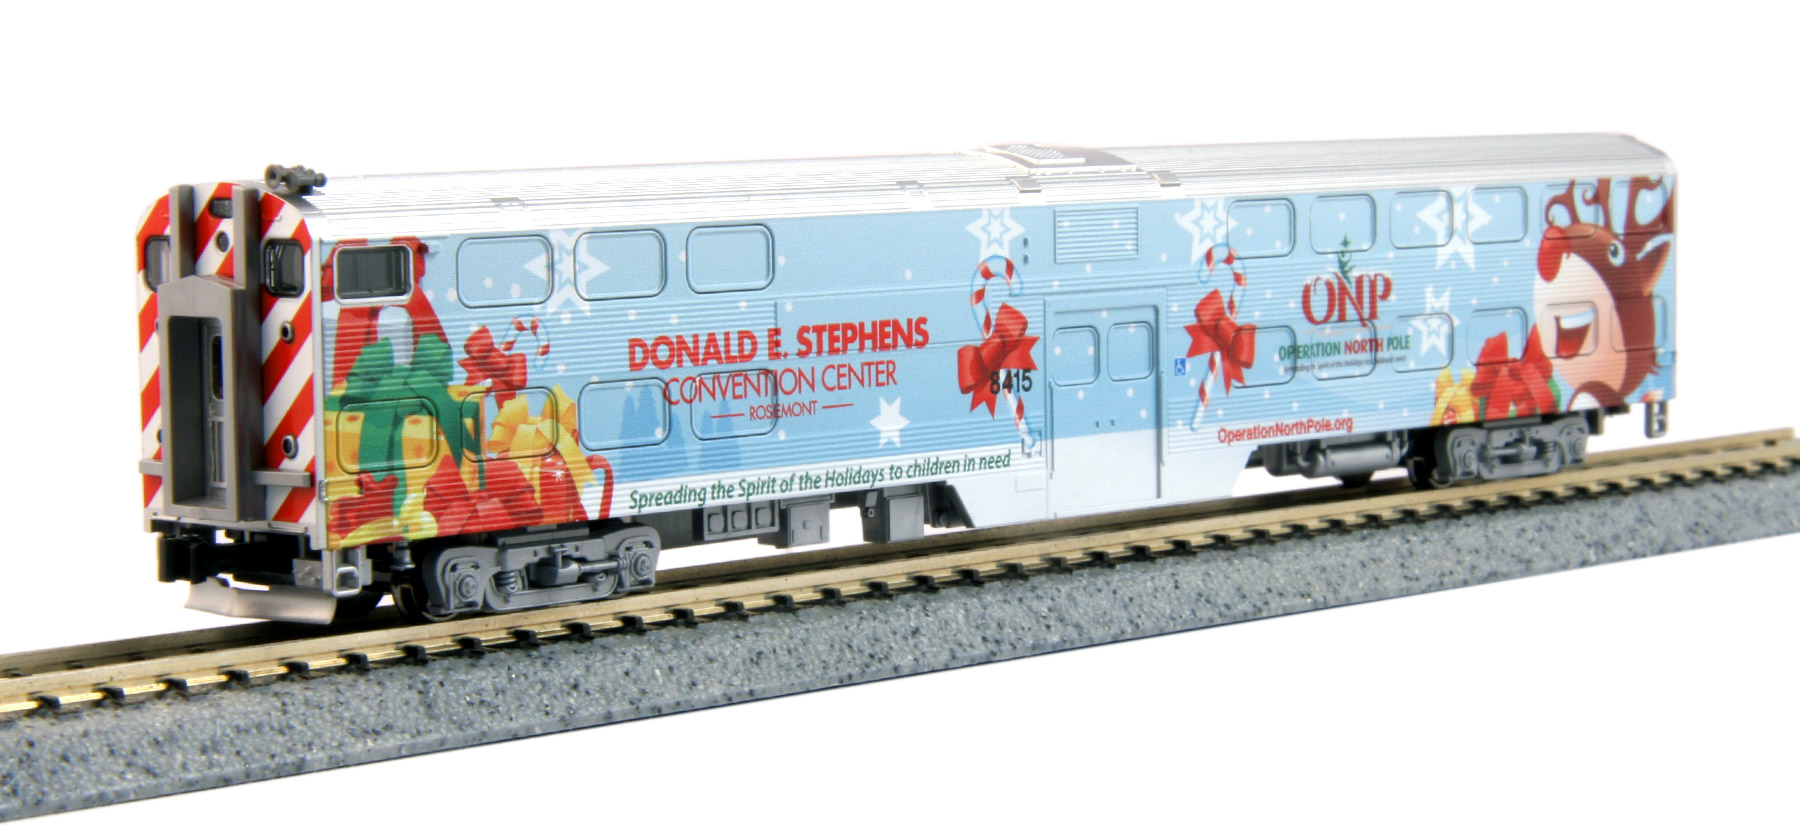 N Scale - Kato USA - 106-2016A-B - Passenger Car, Commuter, Nippon Sharyo Gallery - Operation North Pole - Donald E. Stephens